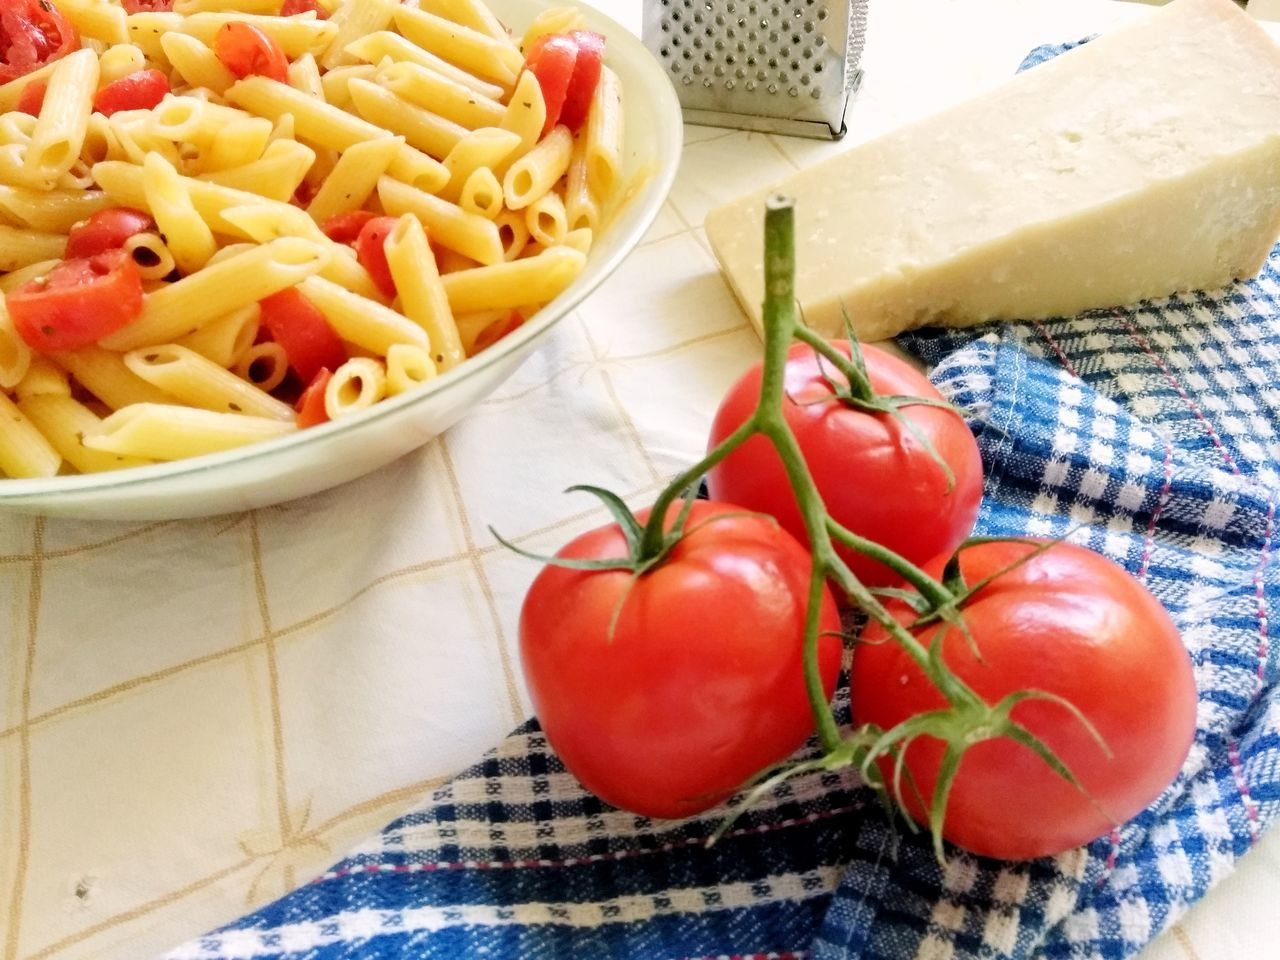 Food And Drink Food Tomato Freshness Healthy Eating Indoors  Vegetable Italian Food Raw Food No People Table Close-up Red Ready-to-eat Day Plate Pasta Homemade Comfort Food Diet Mediterranean Food Mediterranean Lifestyle Bowl Red High Angle View